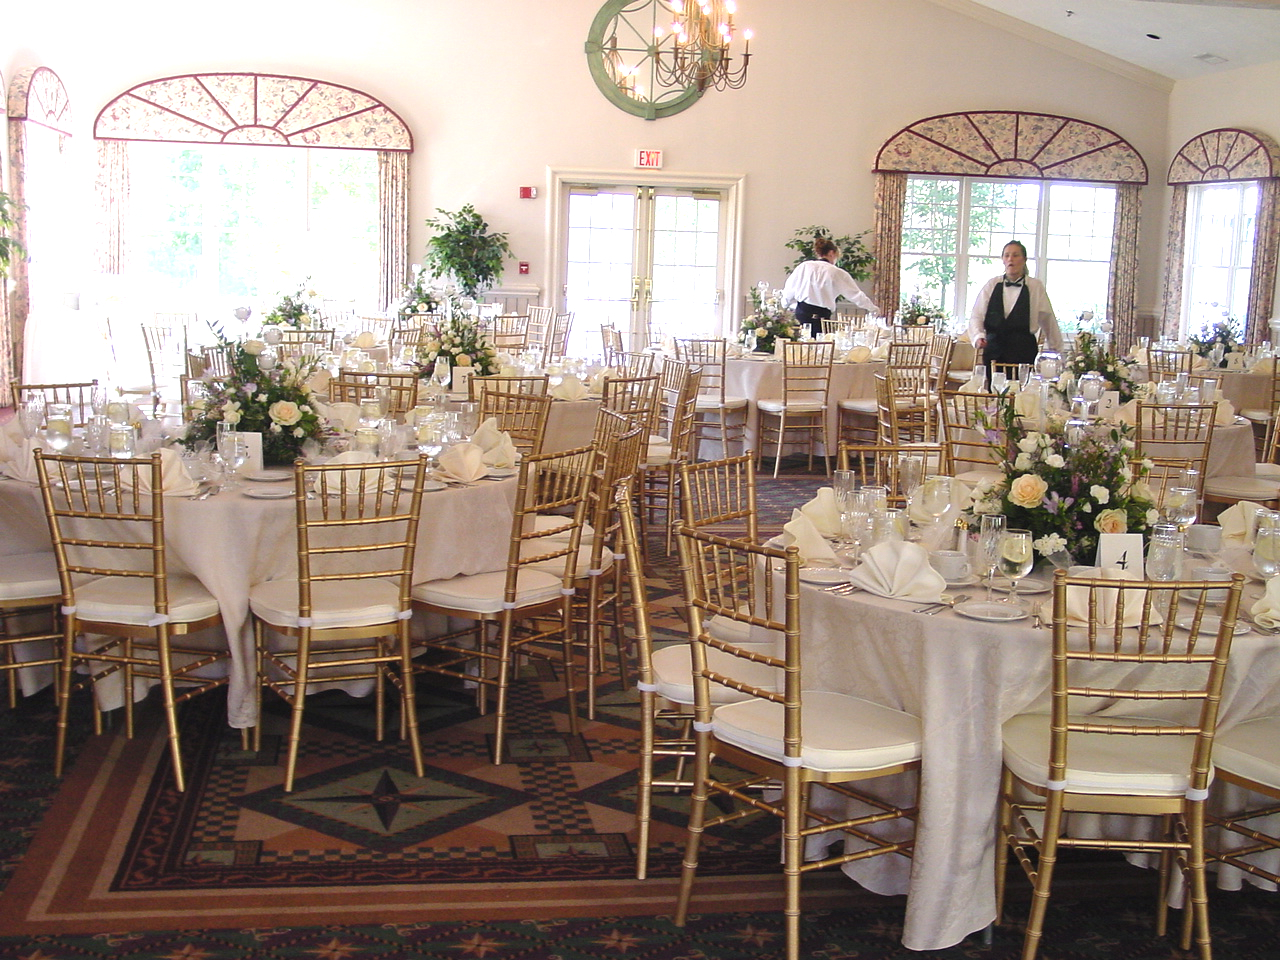 Wedding Table Plans For Complicated Families